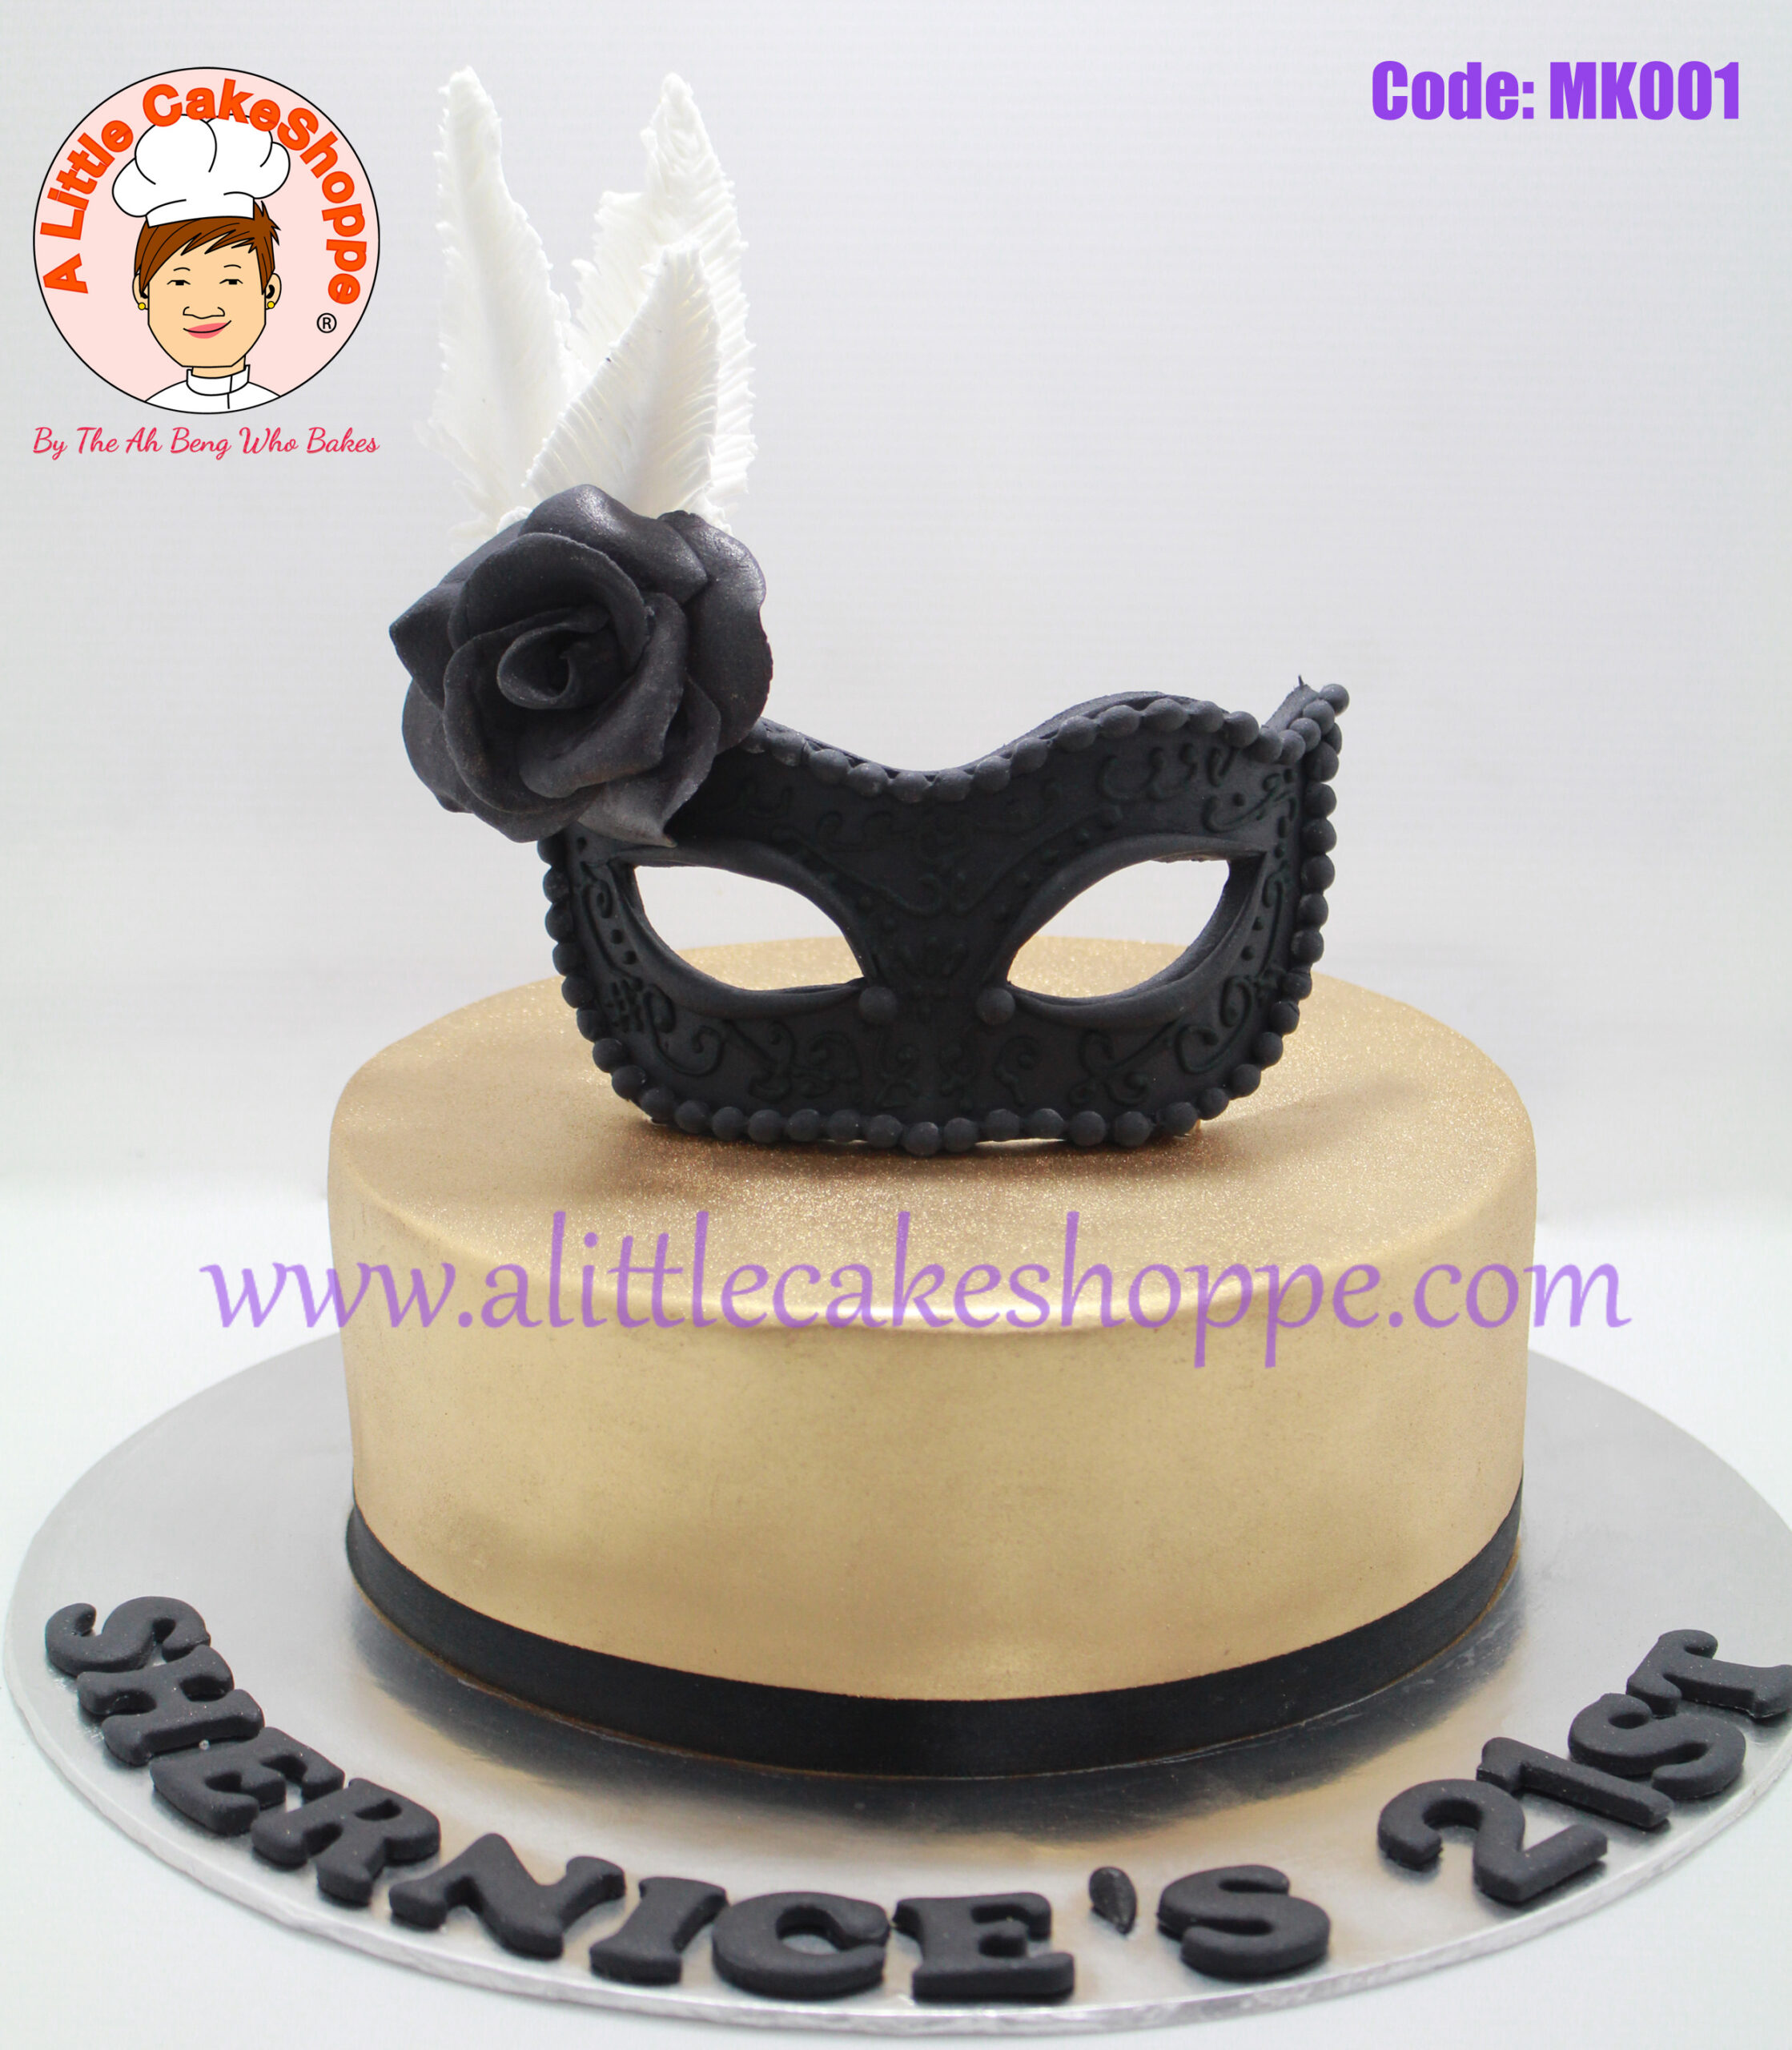 Best Customised Cake Shop Singapore custom cake 2D 3D birthday cake cupcakes desserts wedding corporate events anniversary 1st birthday 21st birthday fondant fresh cream buttercream cakes alittlecakeshoppe a little cake shoppe compliments review singapore bakers SG cake shop cakeshop ah beng who bakes masquerade